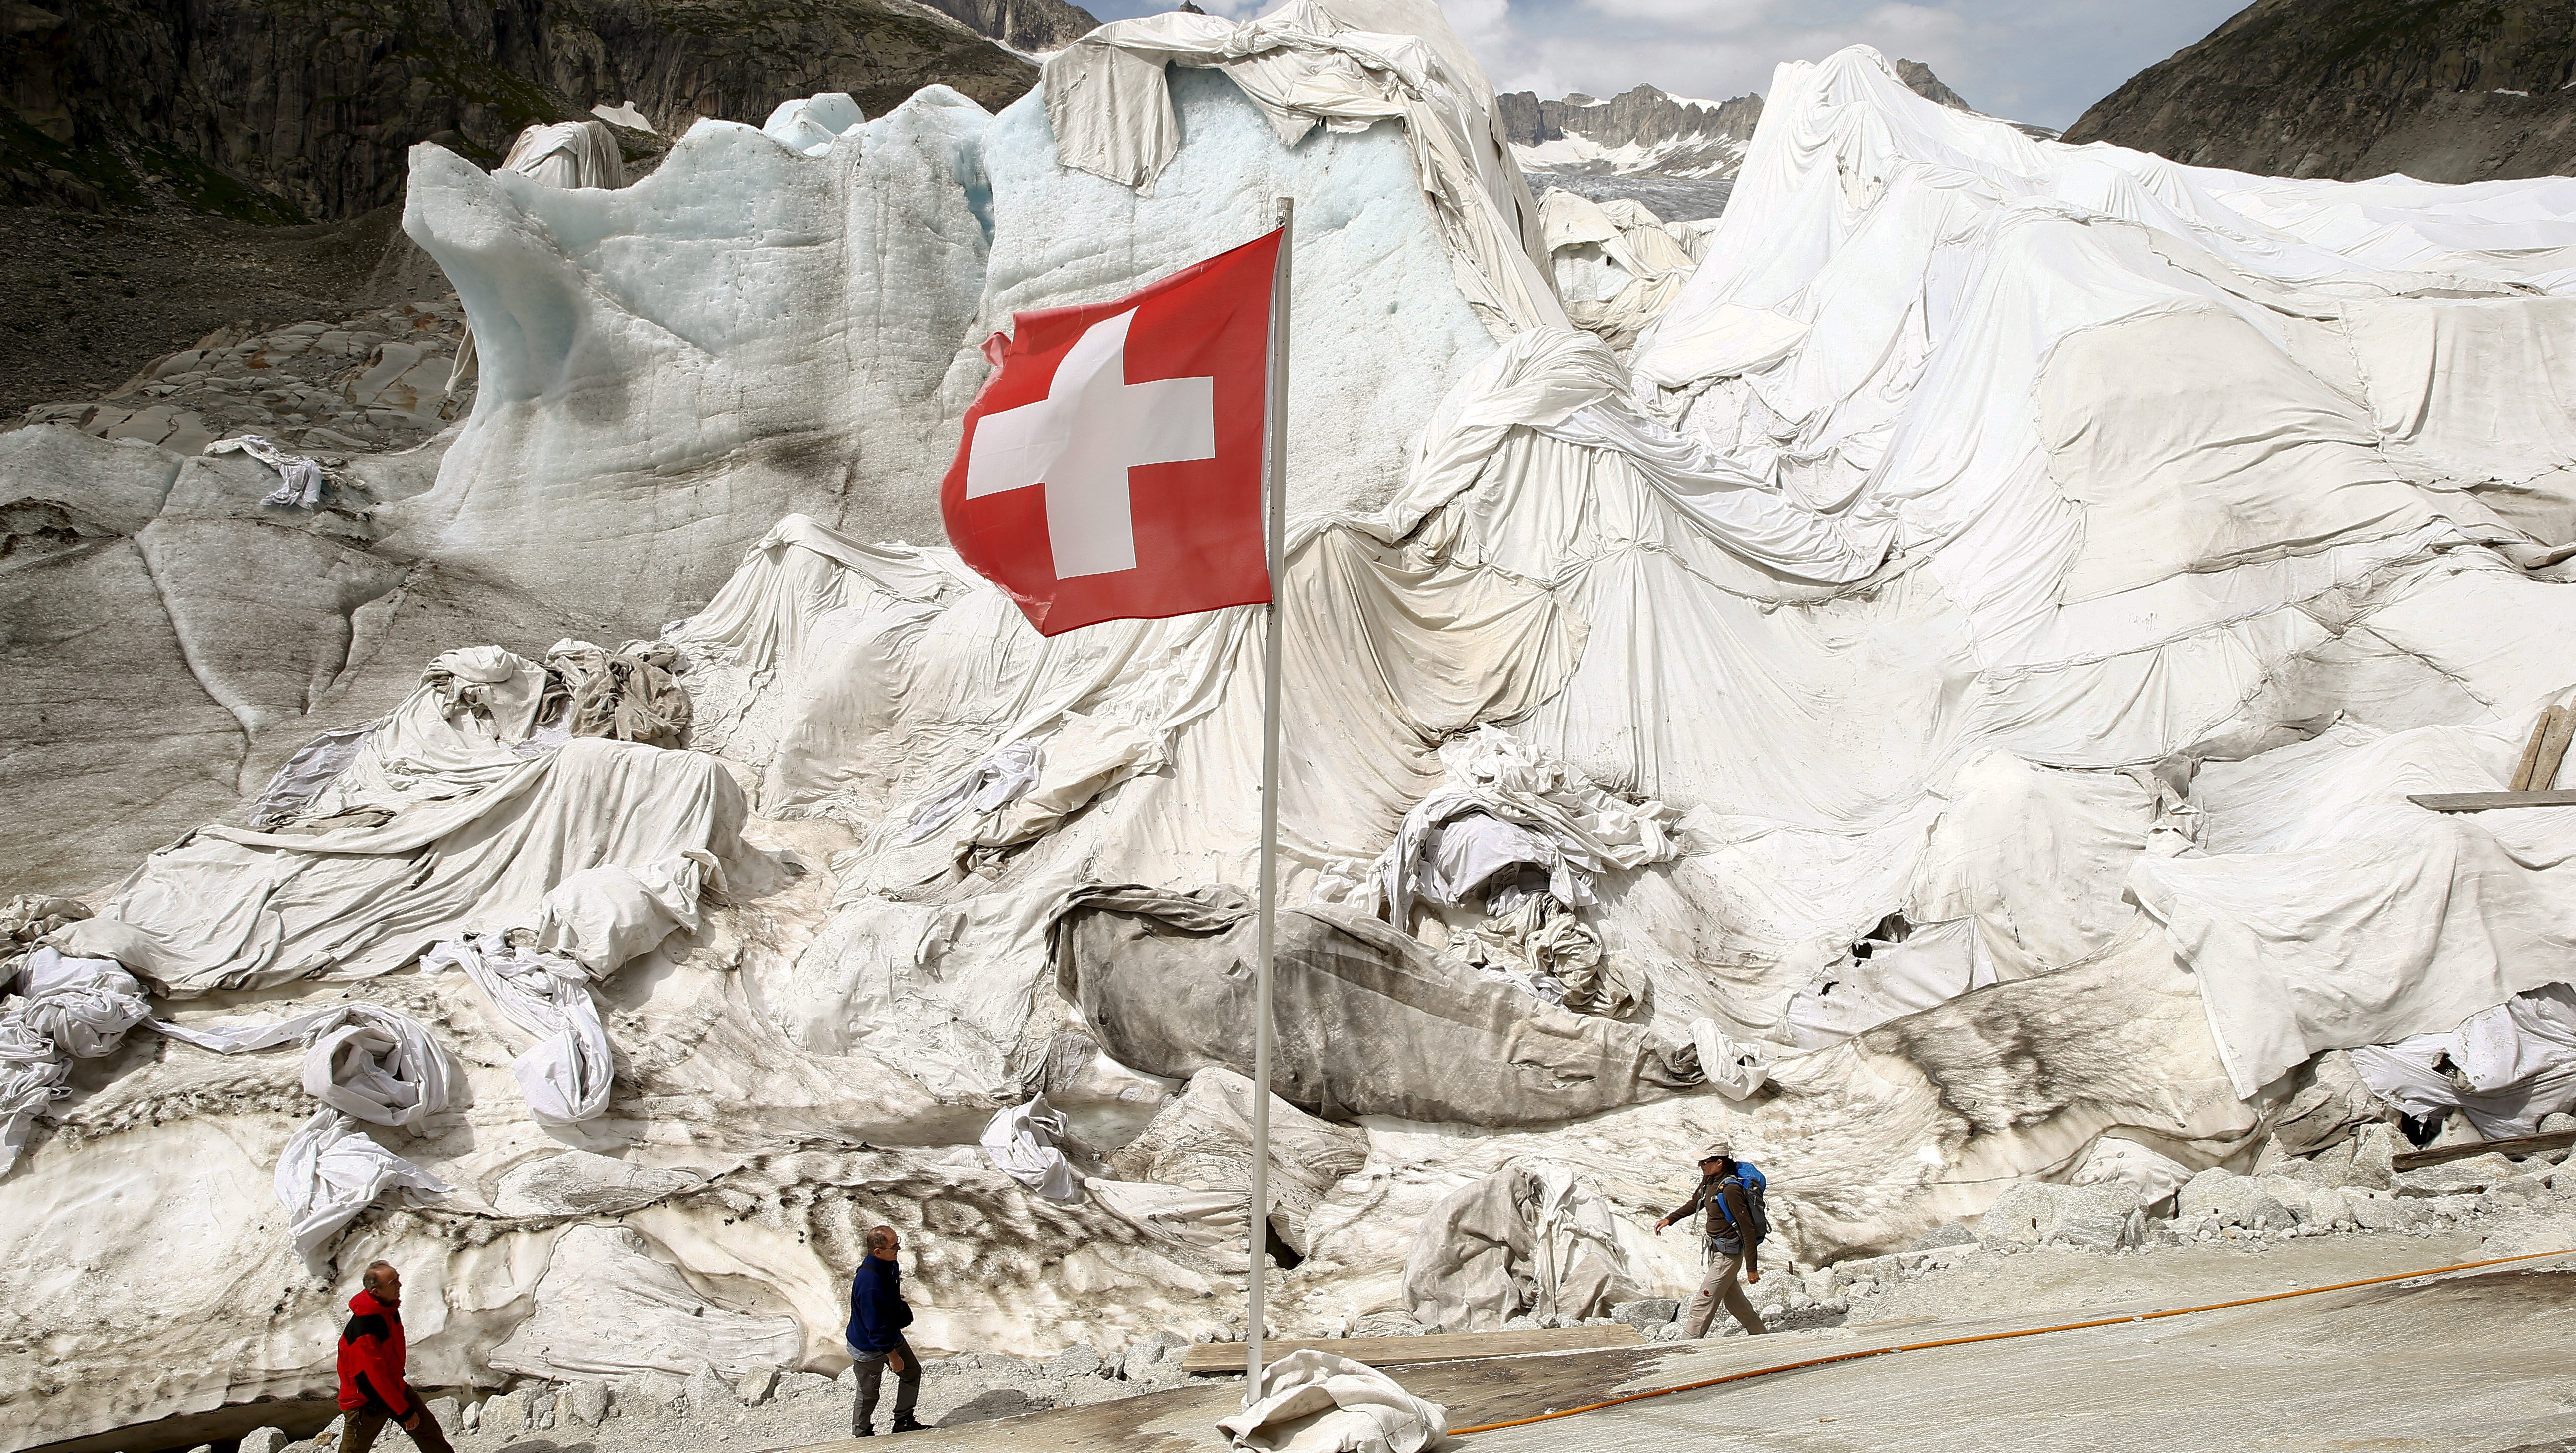 The Rhone Glacier wrapped in blankets.